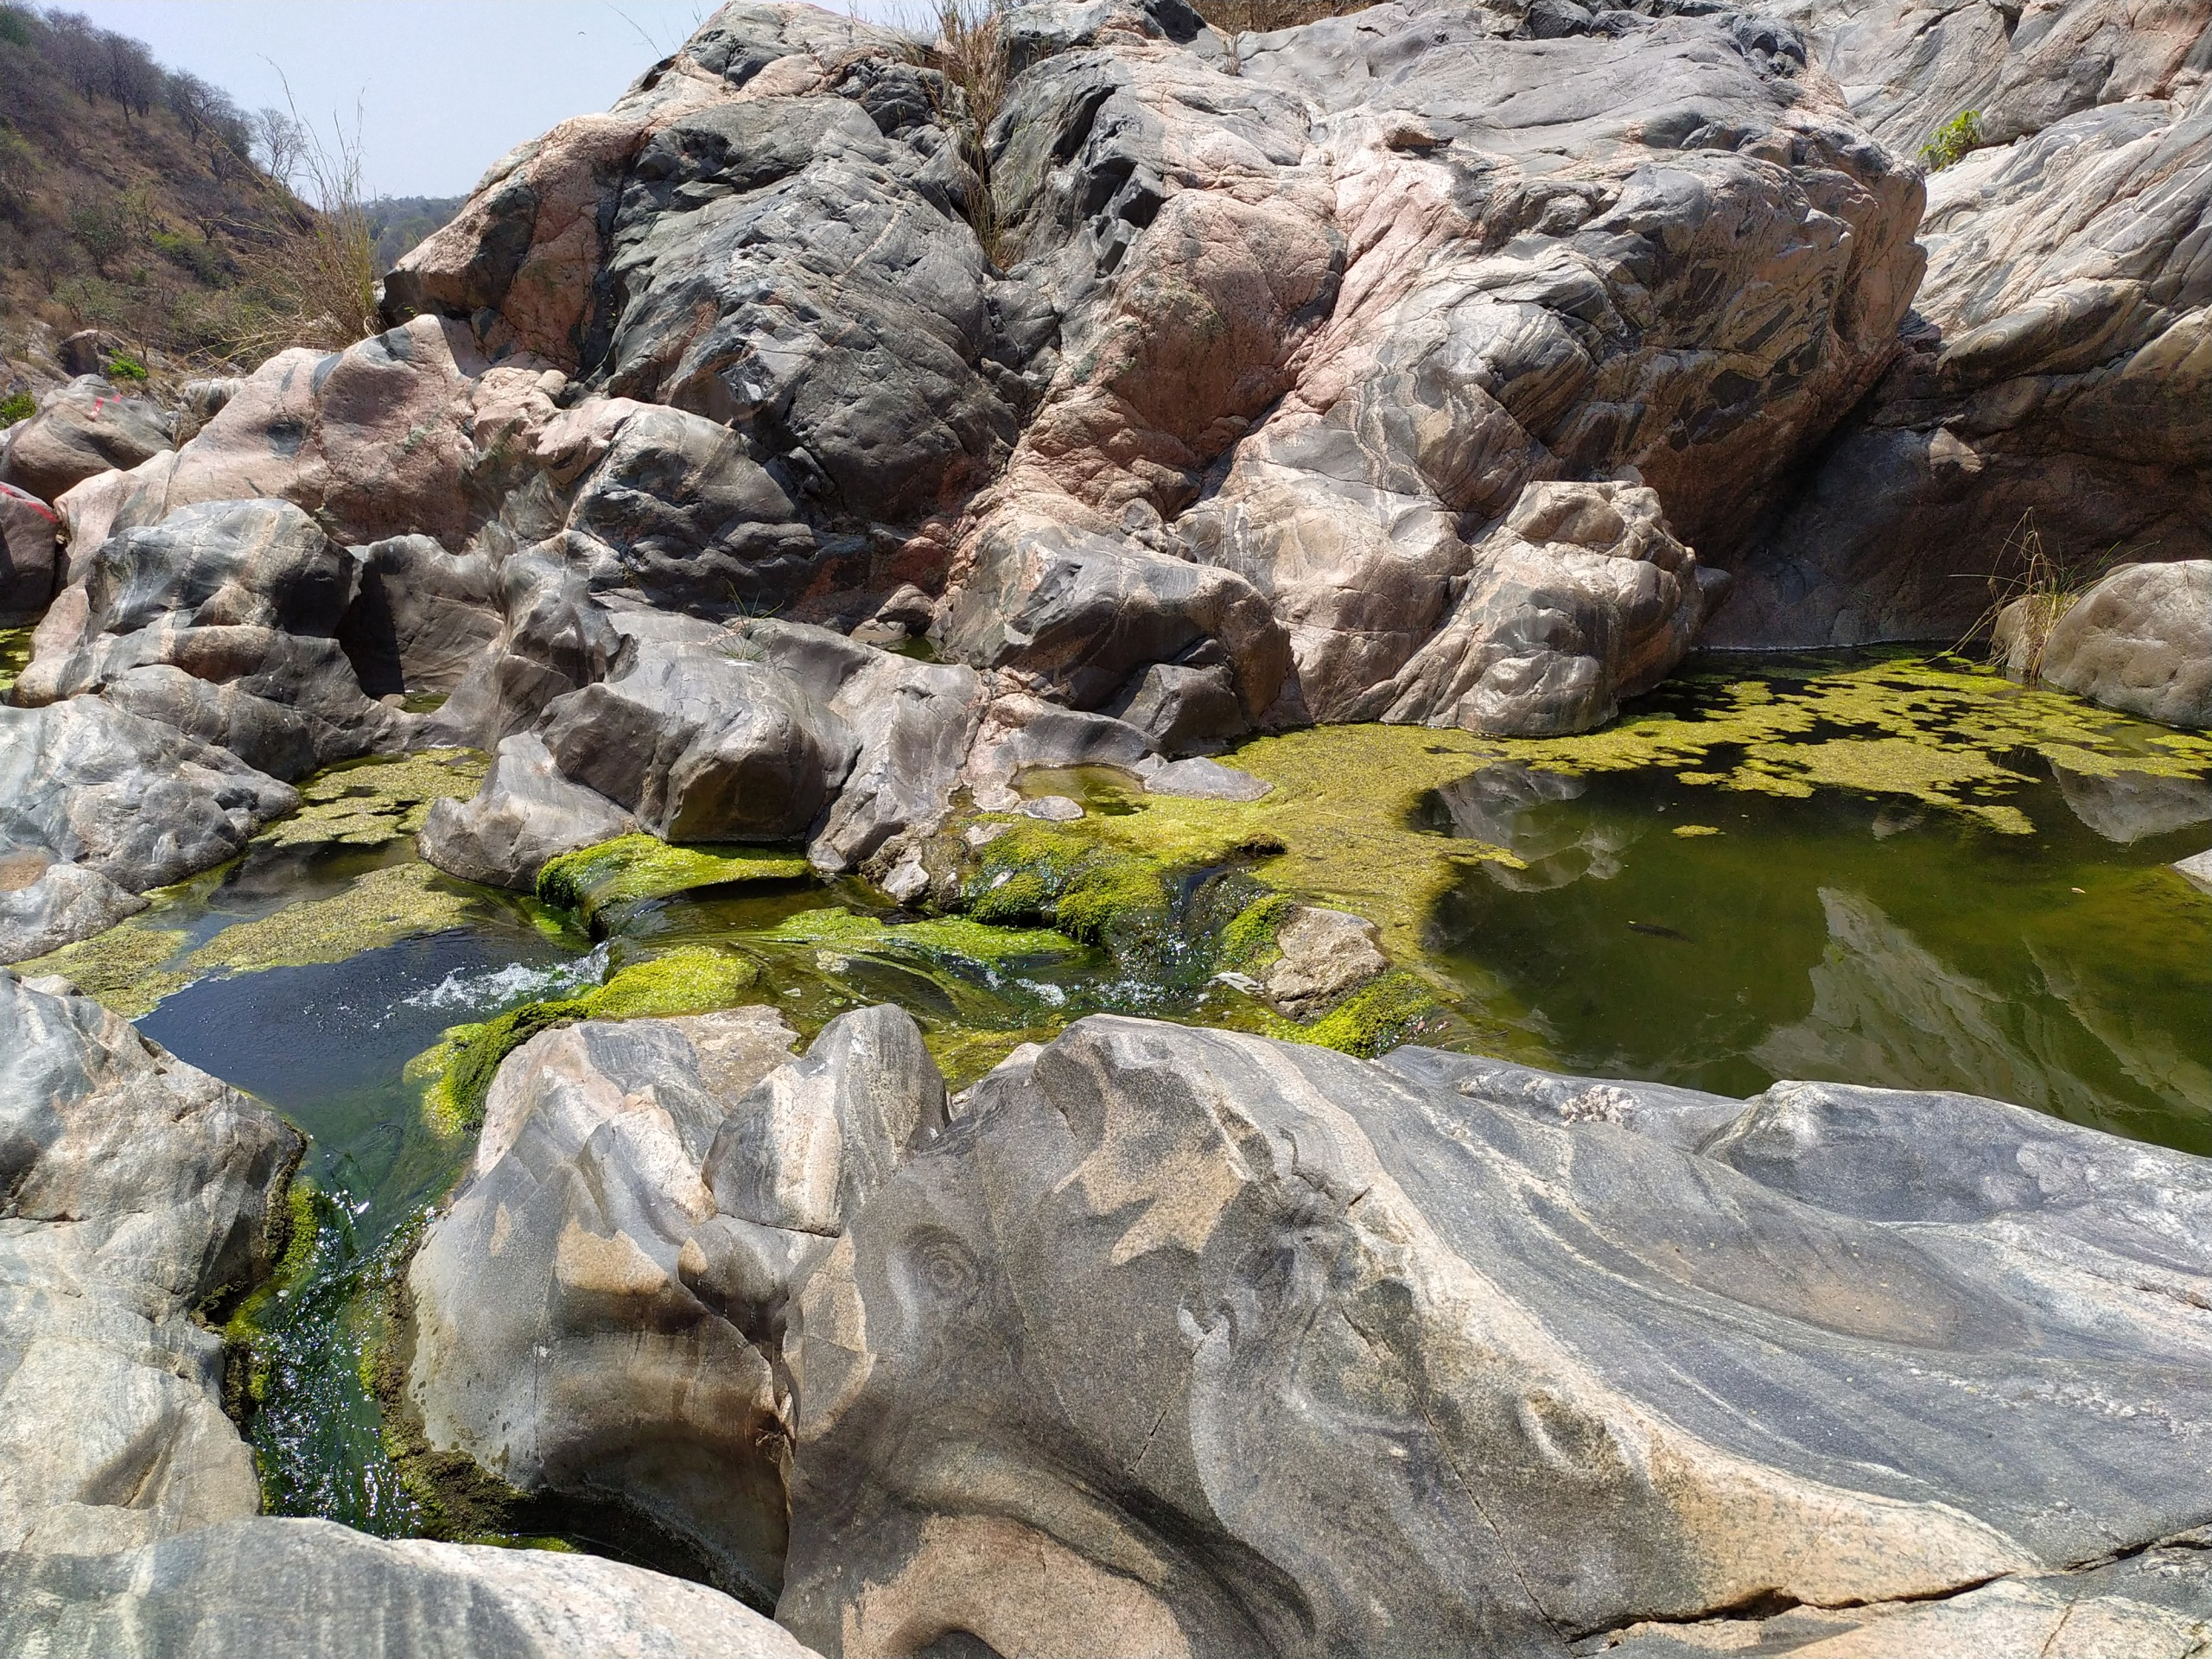 Algae on a stream surrounded with boulders